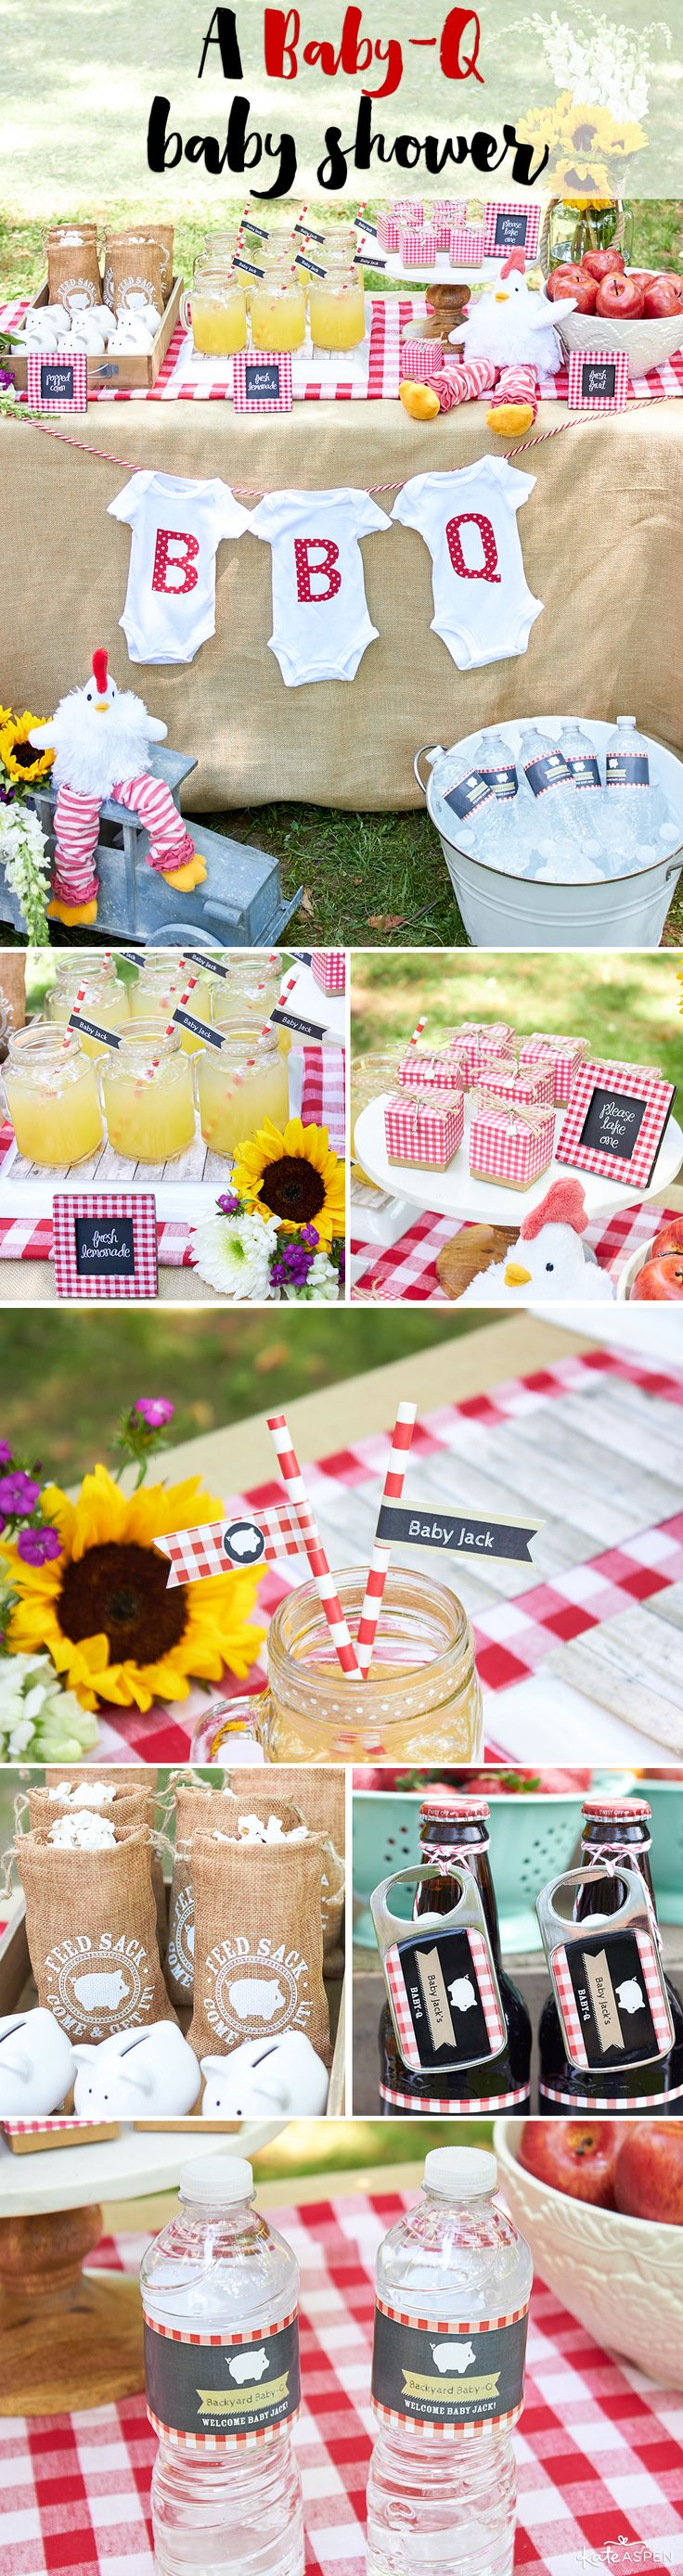 Best 25 Summer baby showers ideas on Pinterest